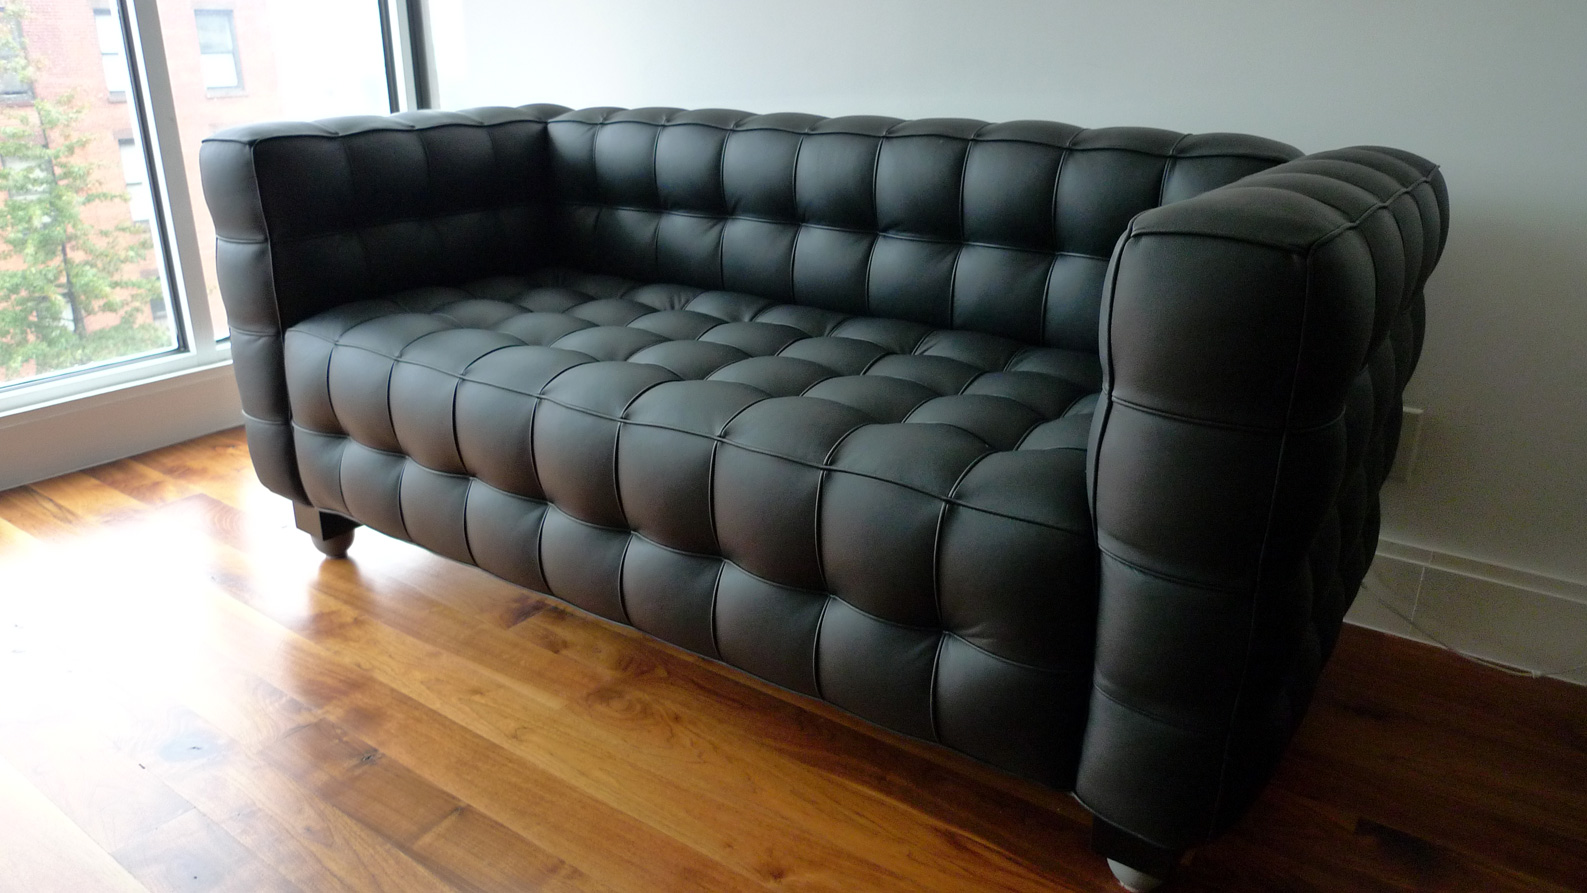 How To Clean A Microfiber Couch Upholstery Cleaning